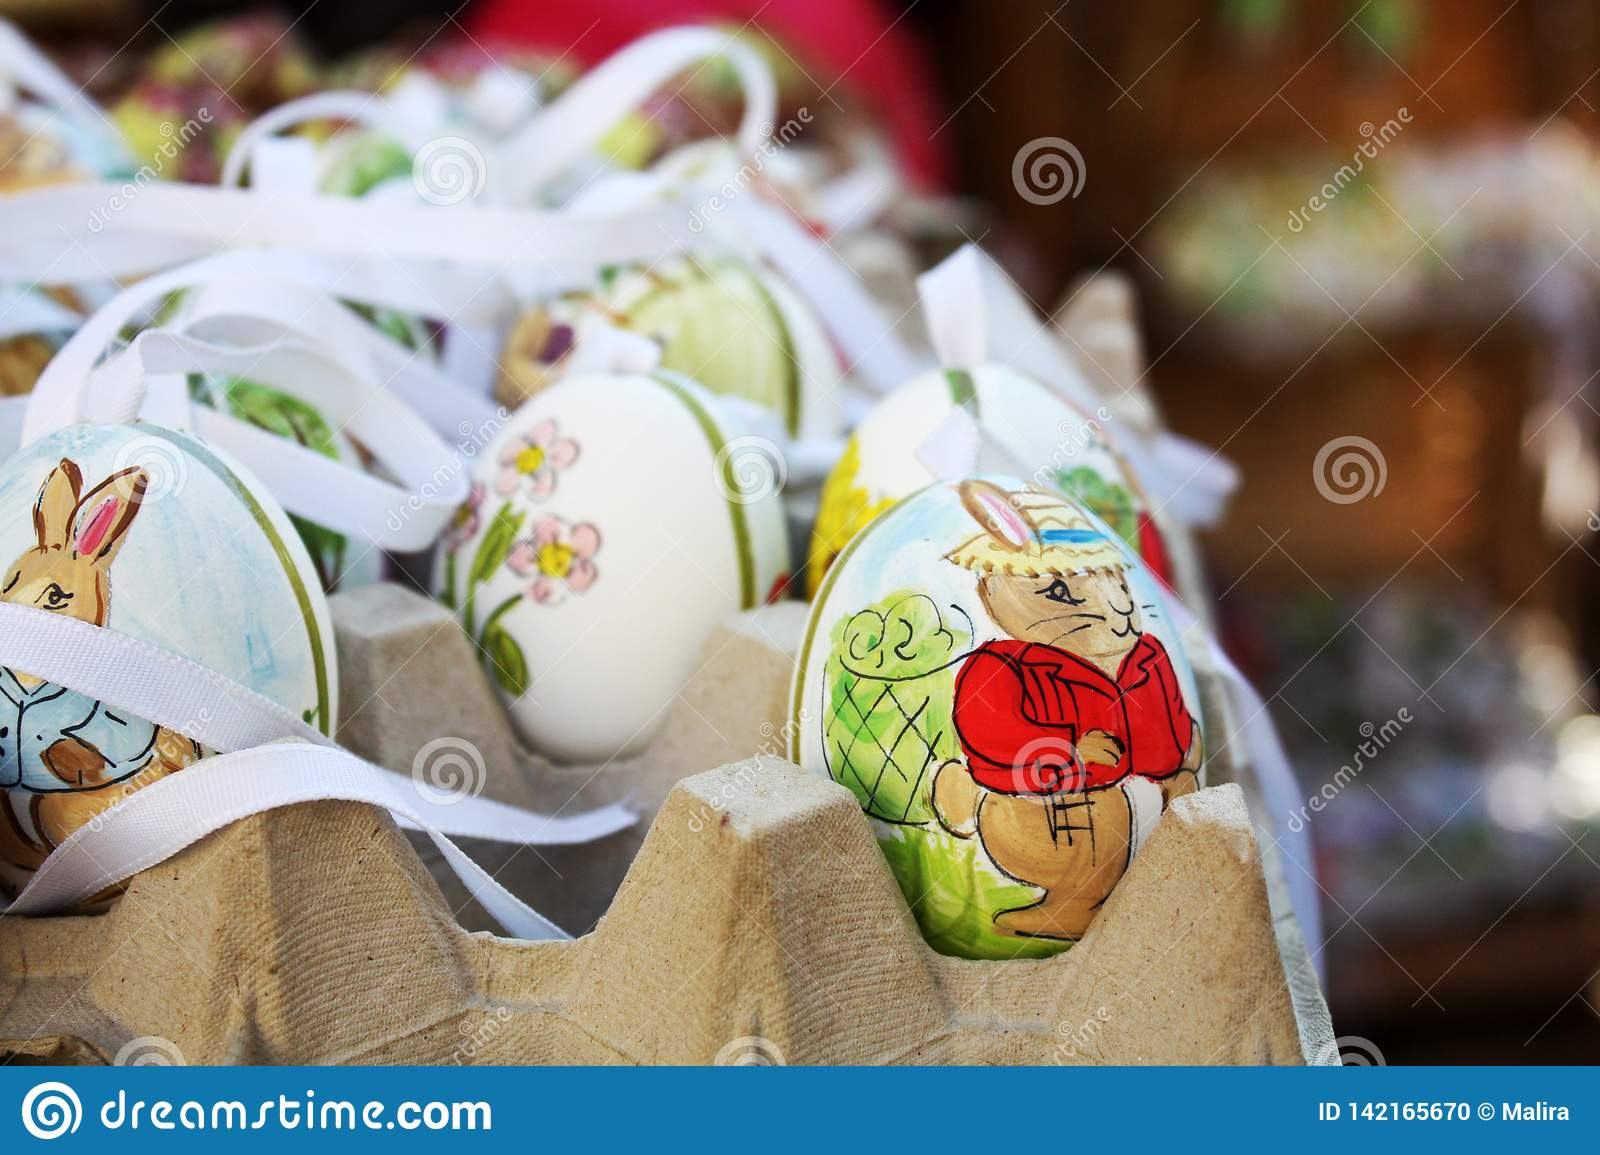 Easter Market Decor With Ribbons, Birds, Eggs. Stock Photo - Image